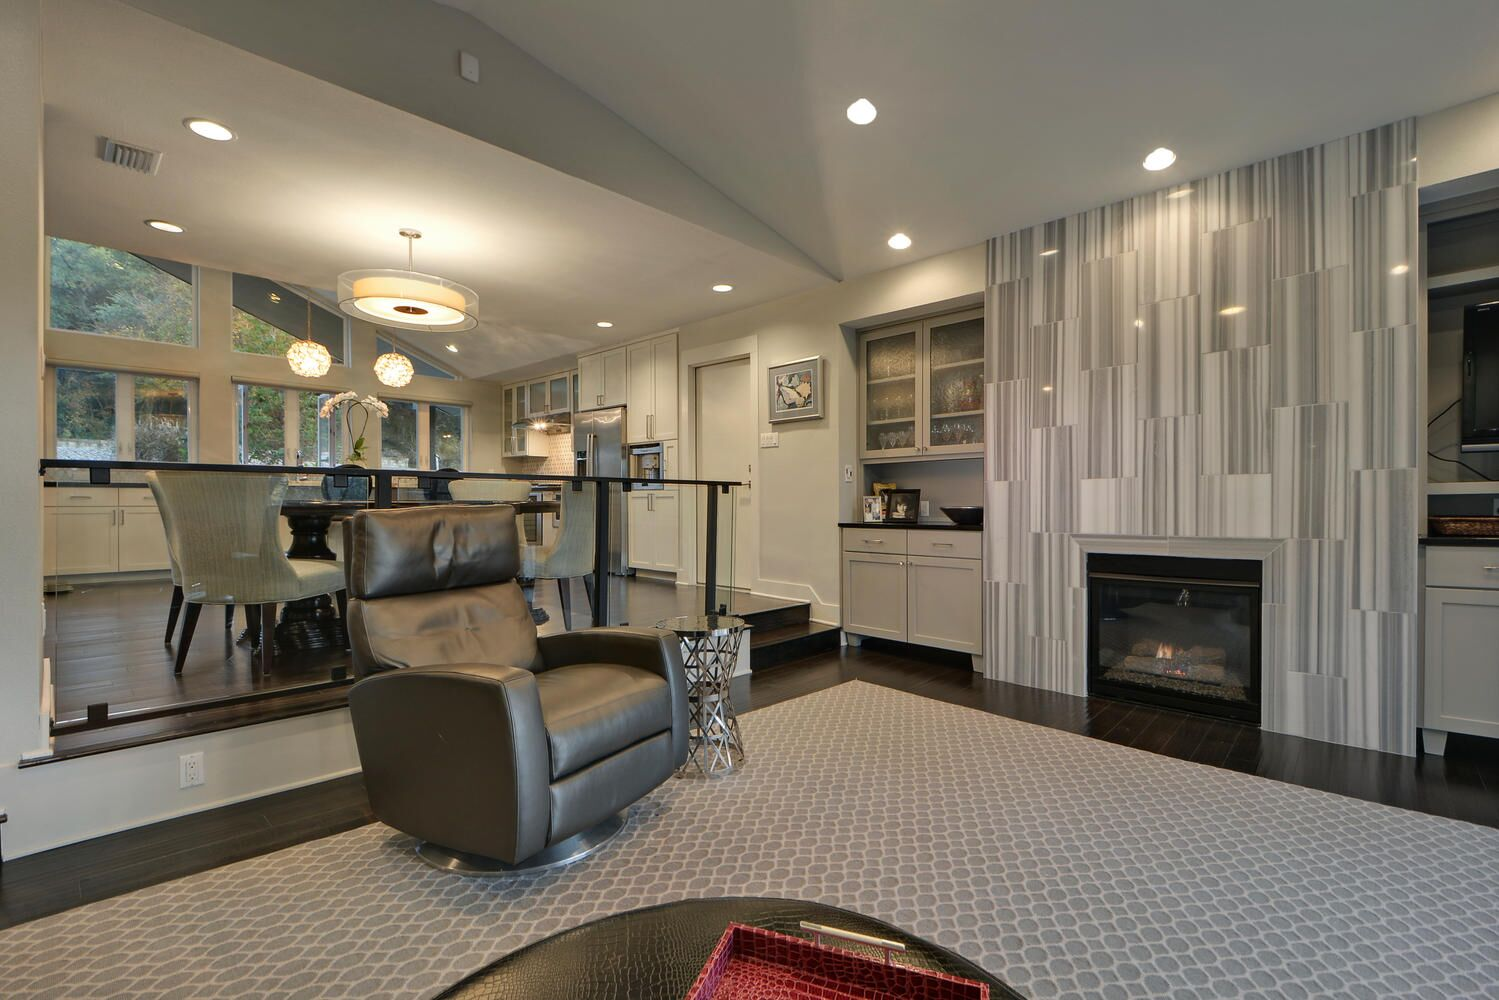 Open Concept Kitchen, Dining Room and Living Room Design